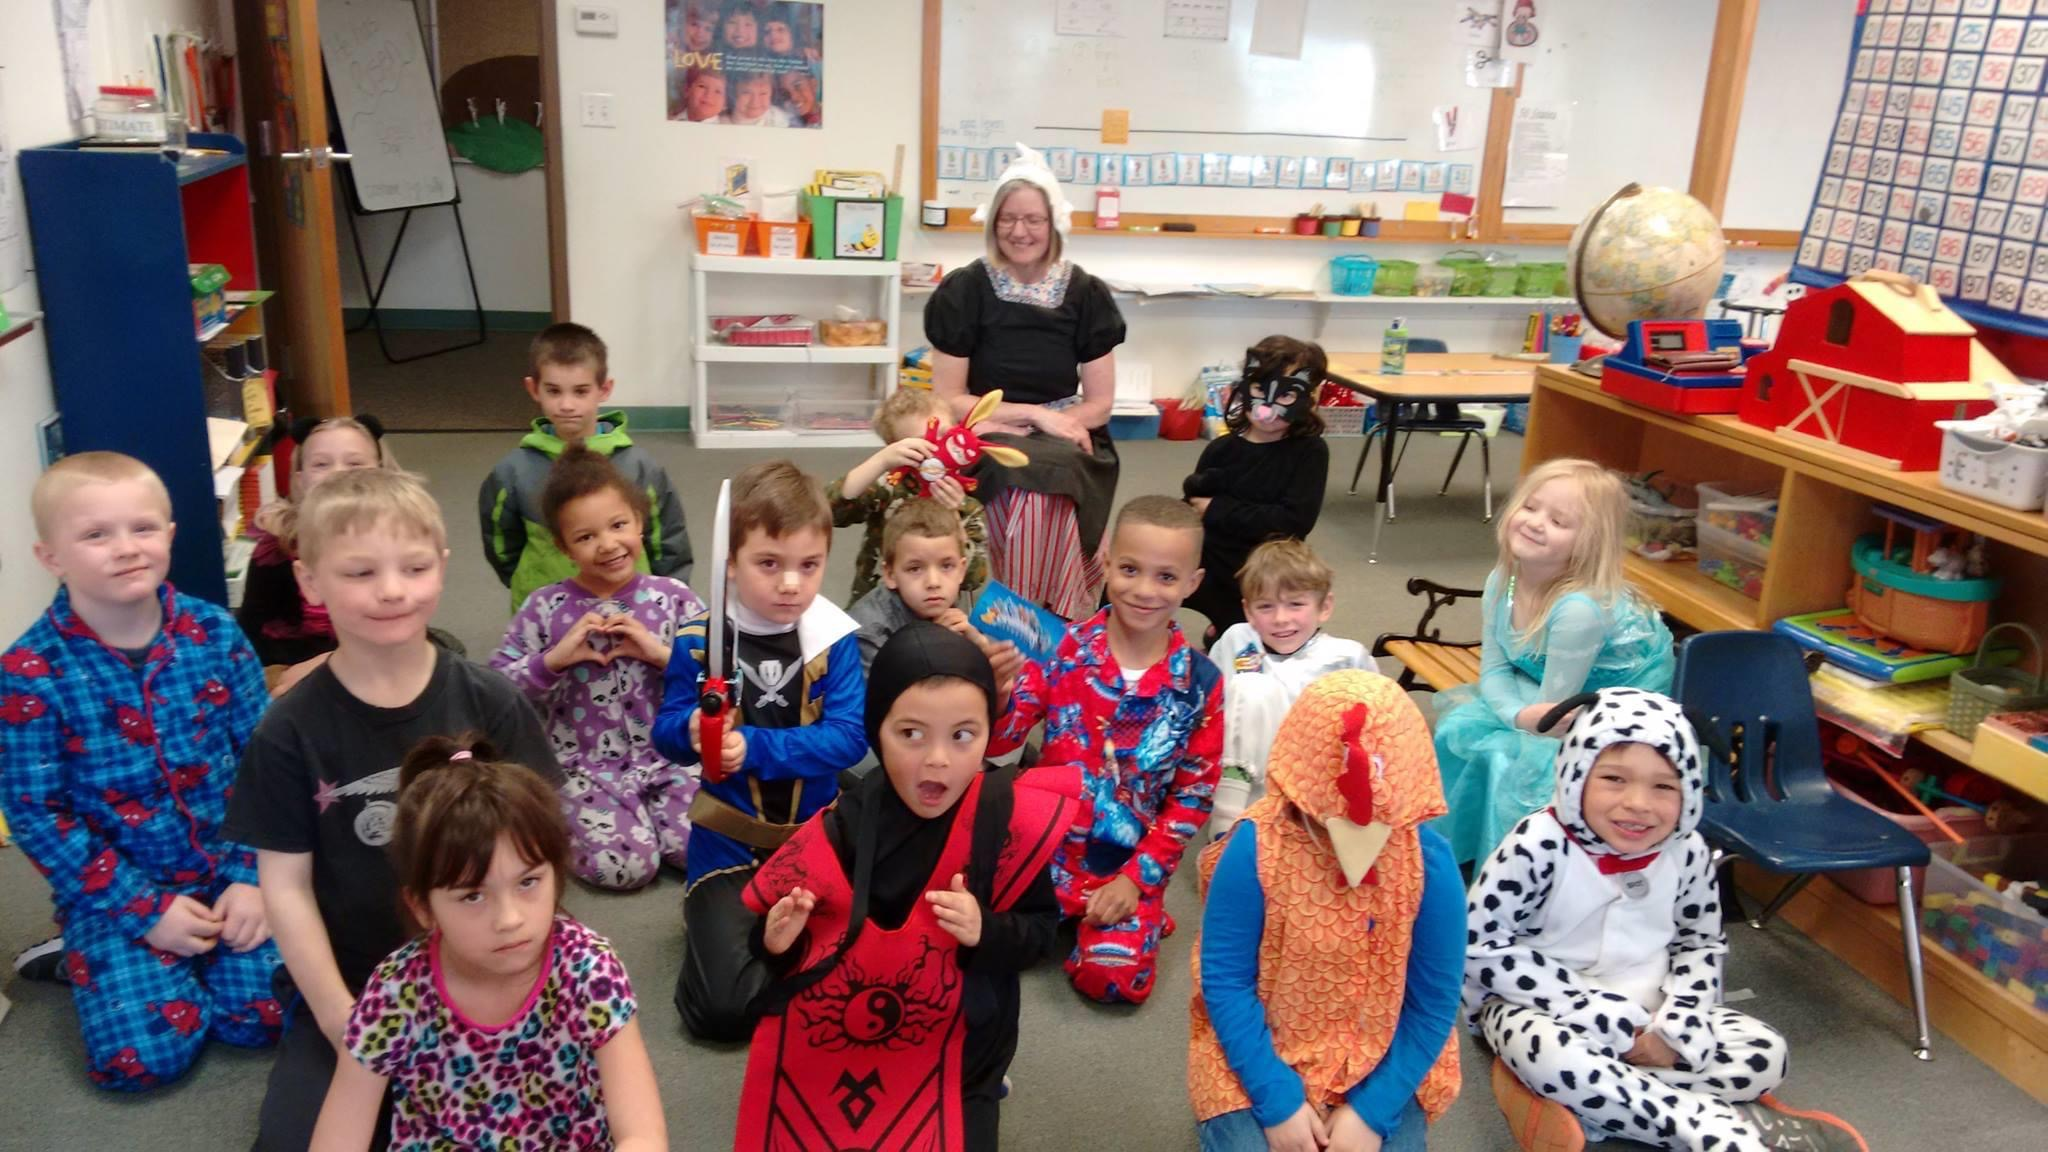 Students reading in costumes